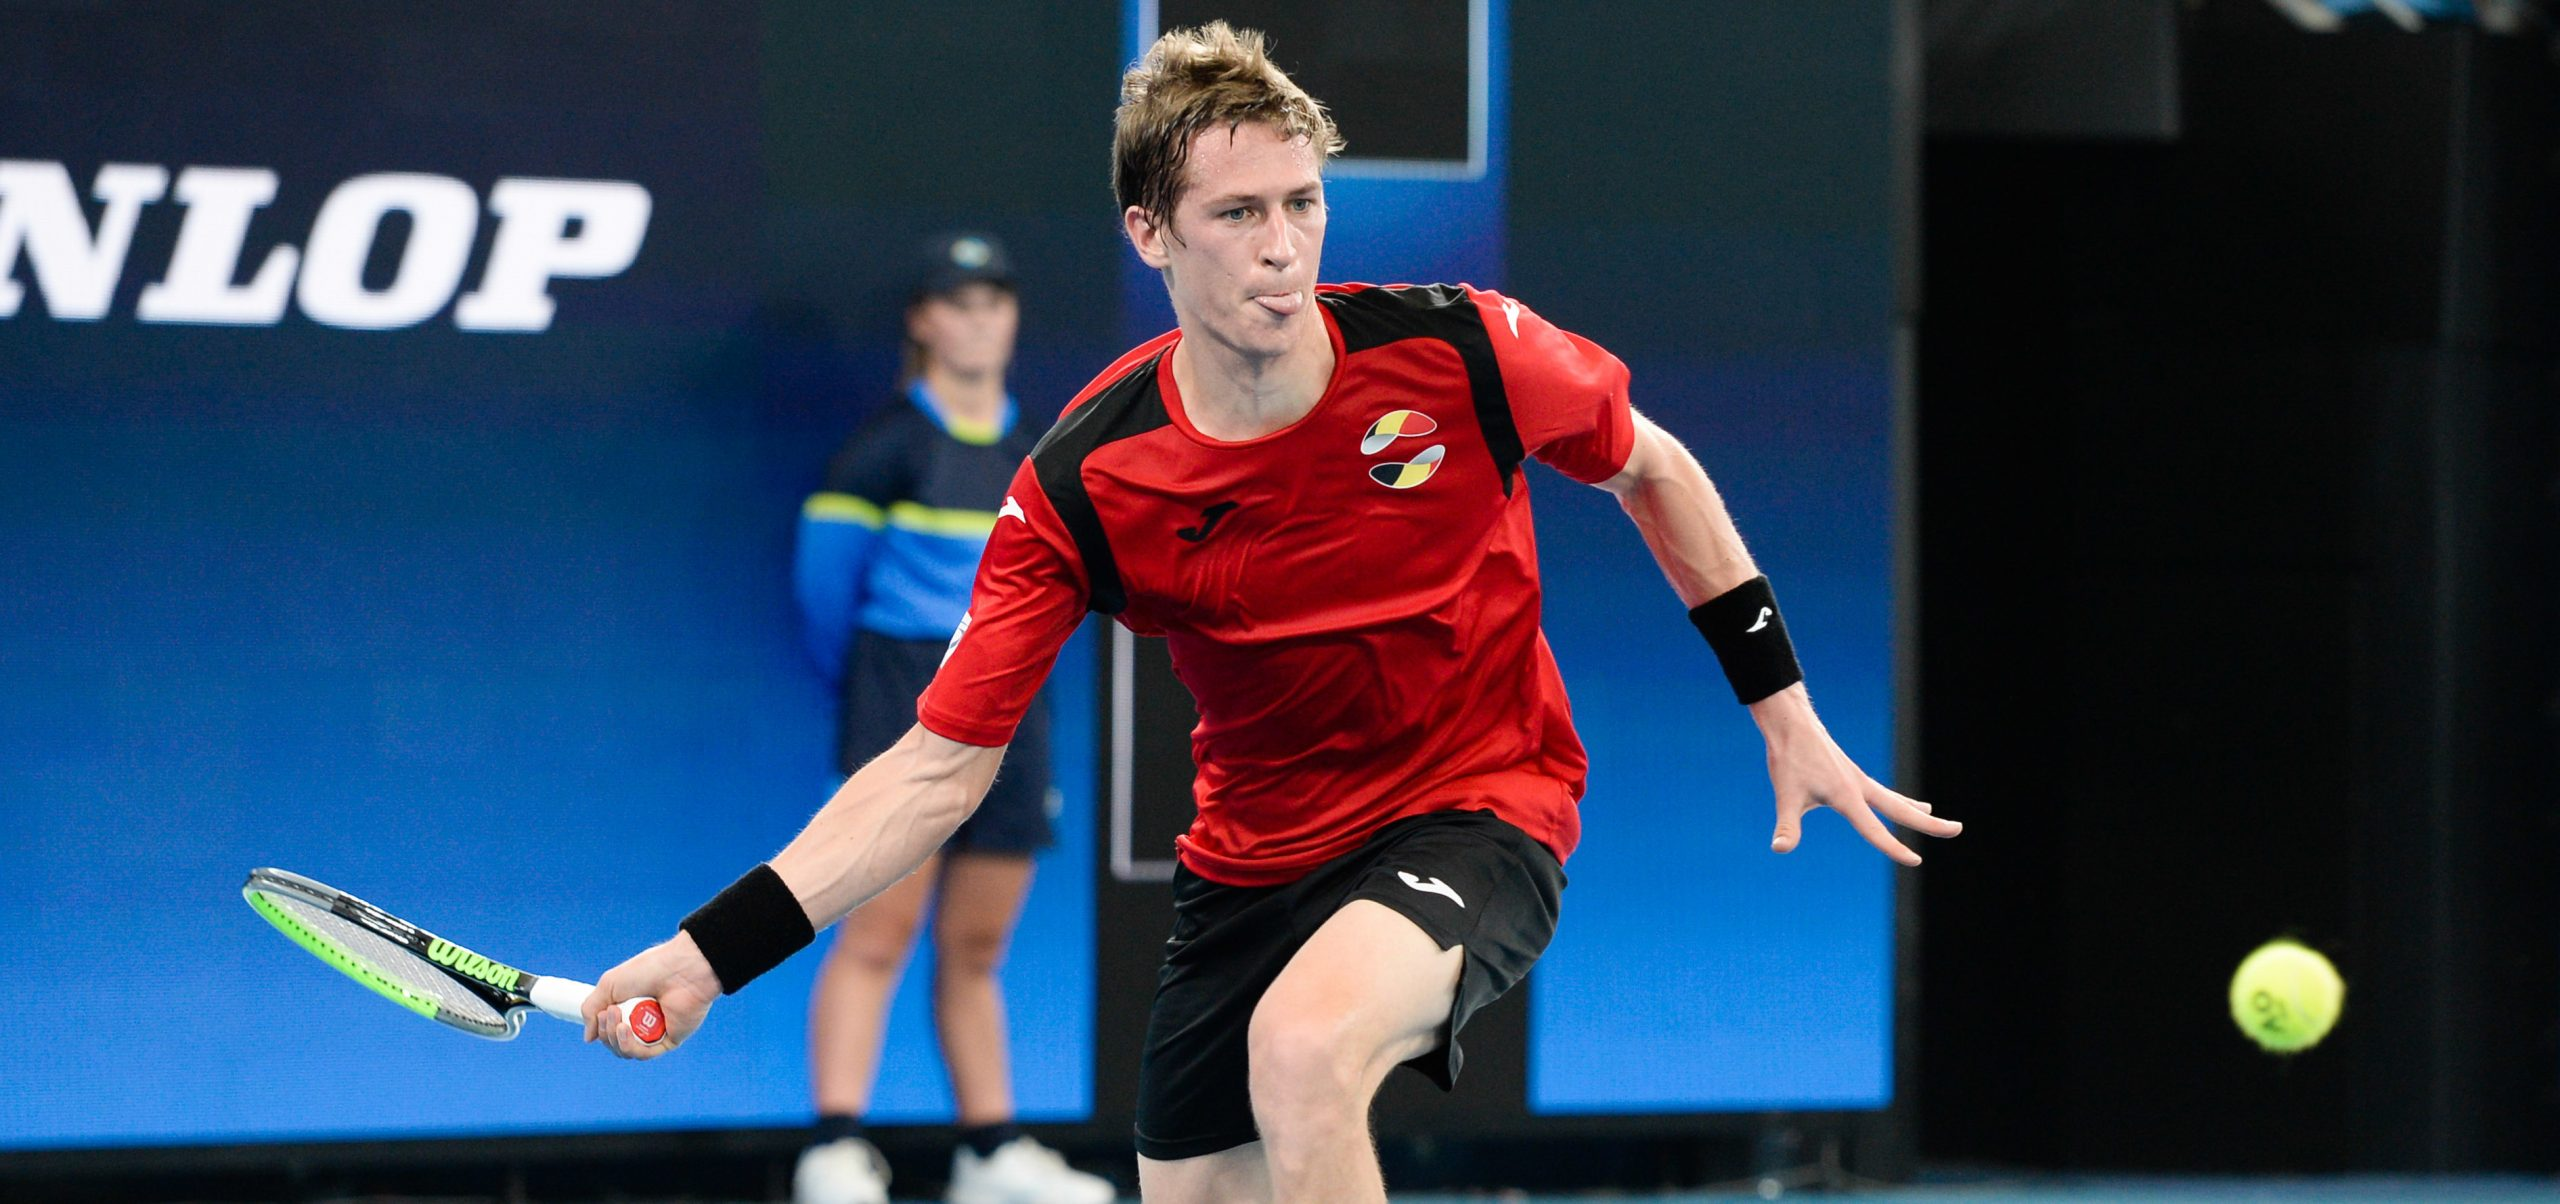 Belgian tennis player Kimmer Coppejans playing for his country in the Davis Cup